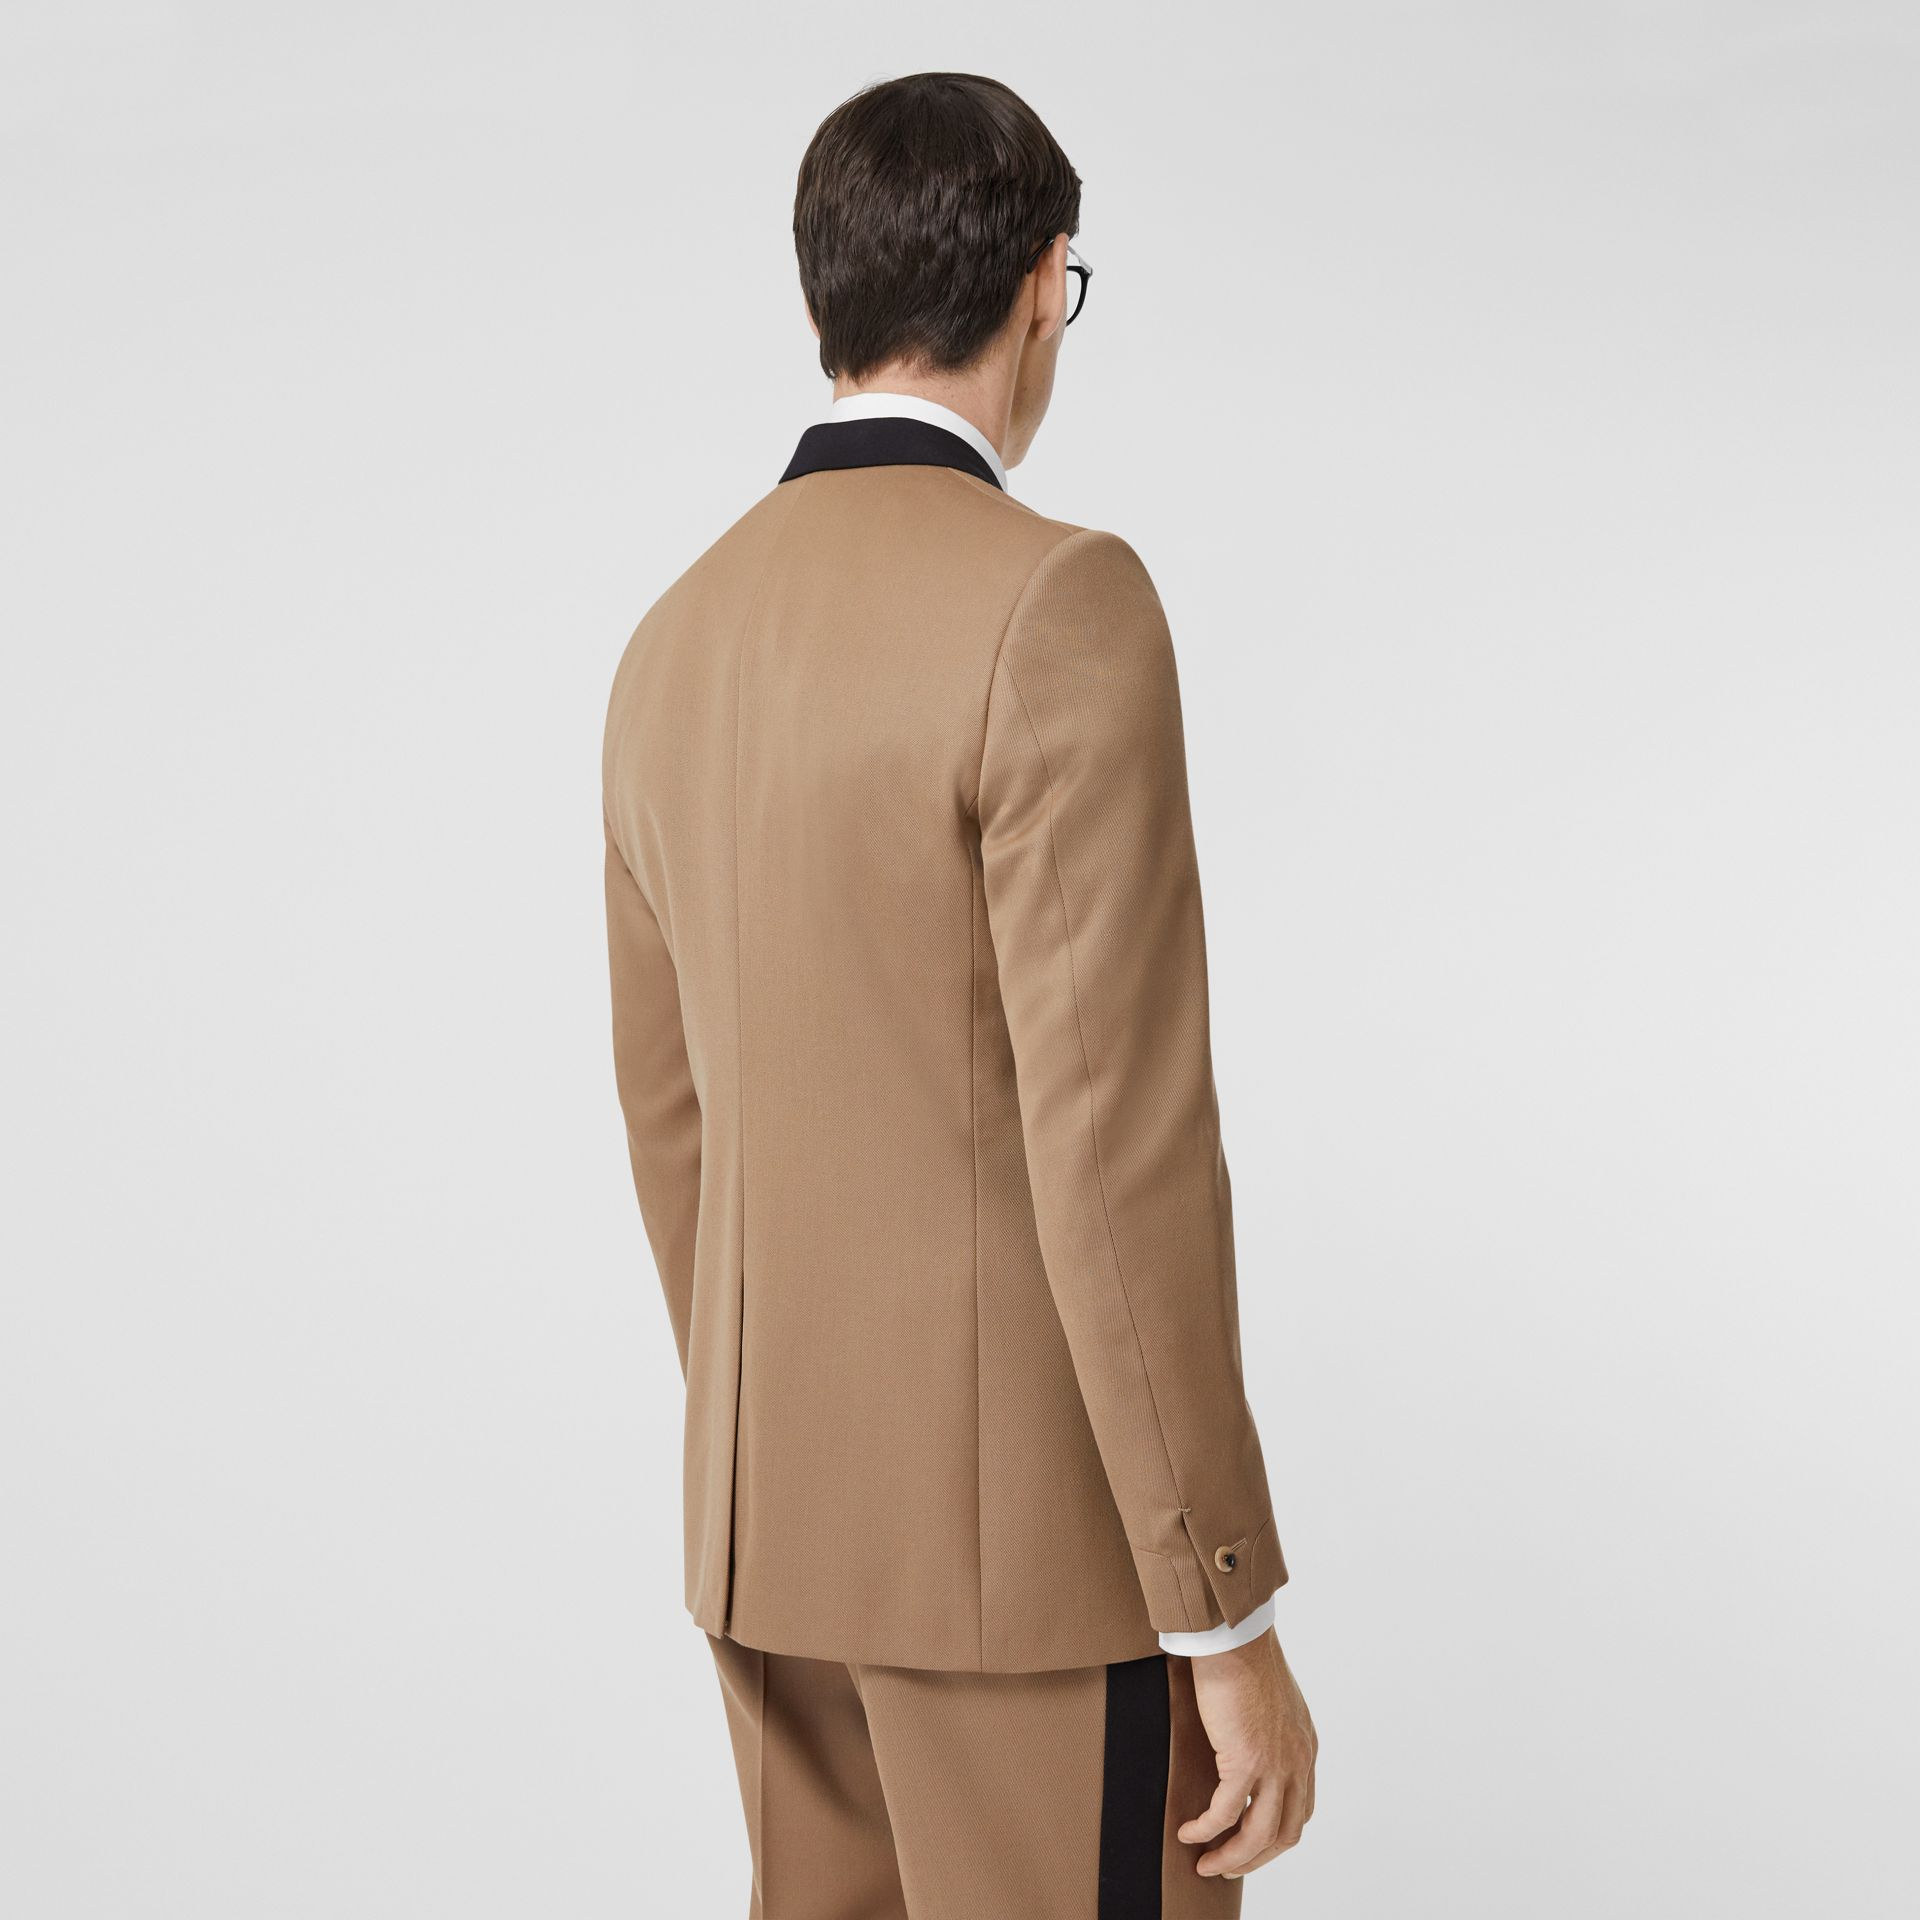 Classic Fit Two-tone Wool Tailored Jacket in Camel - Men | Burberry United Kingdom - gallery image 2